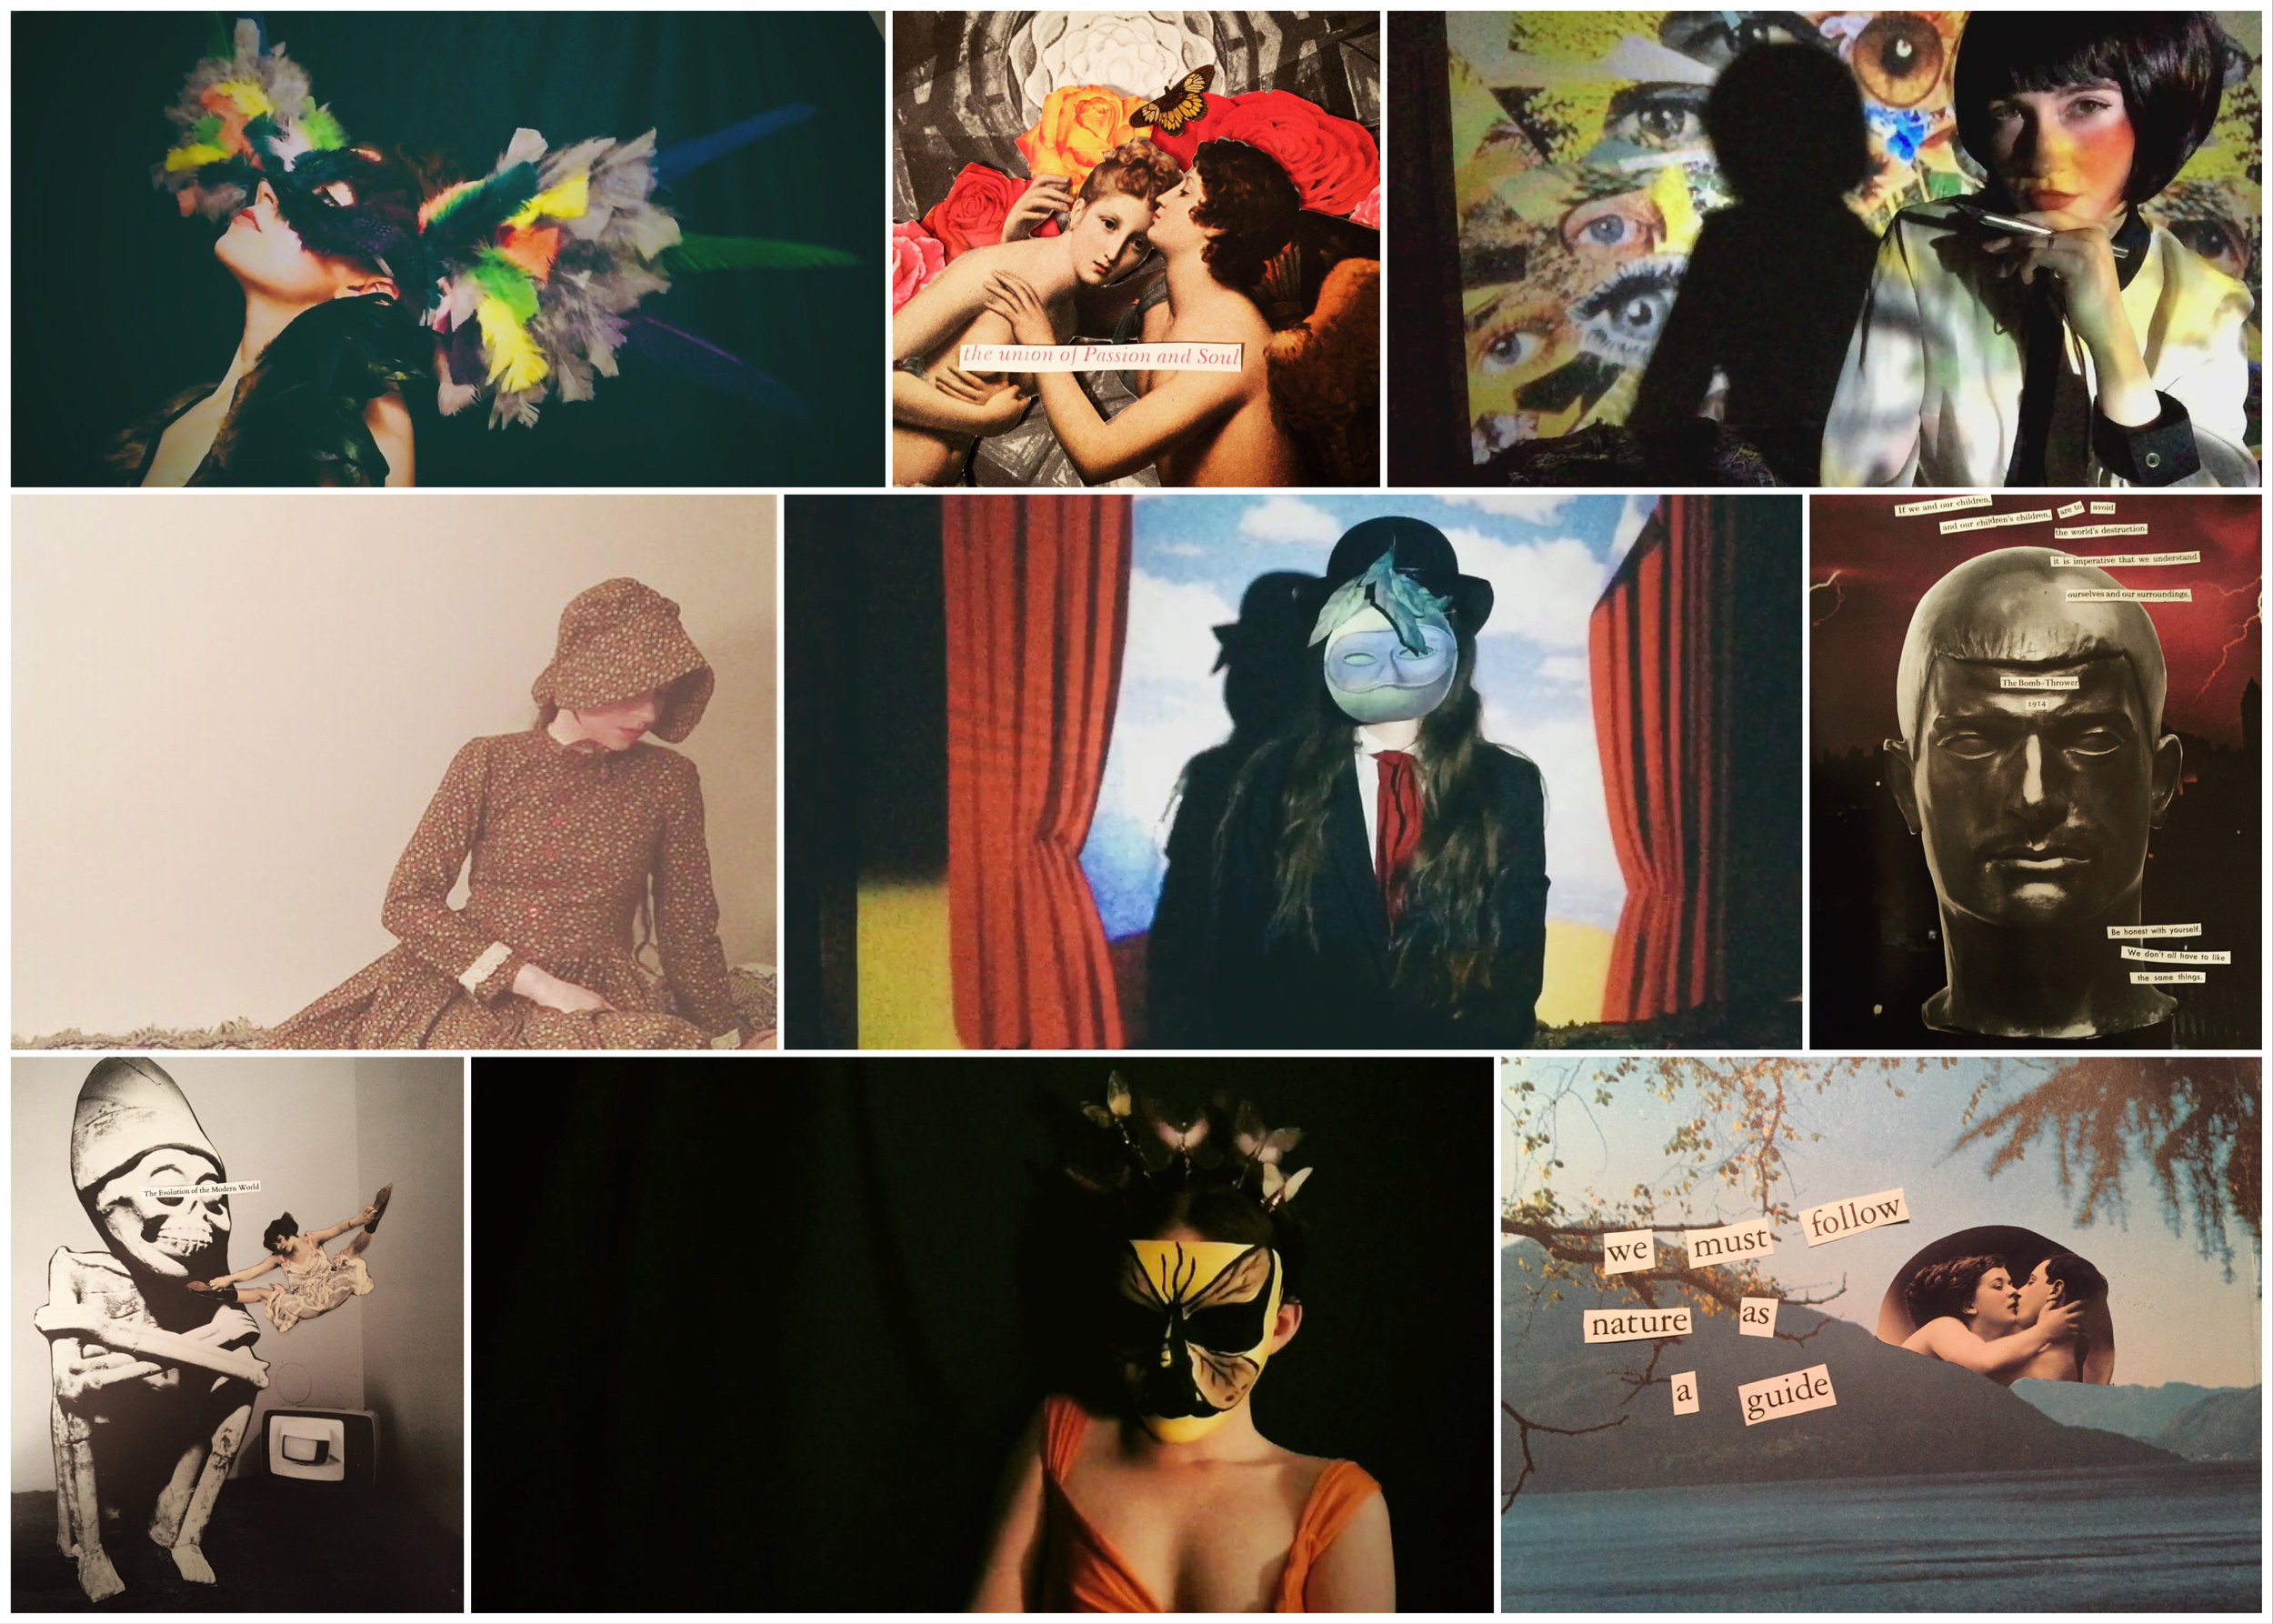 An overview of my creative works from the past week.